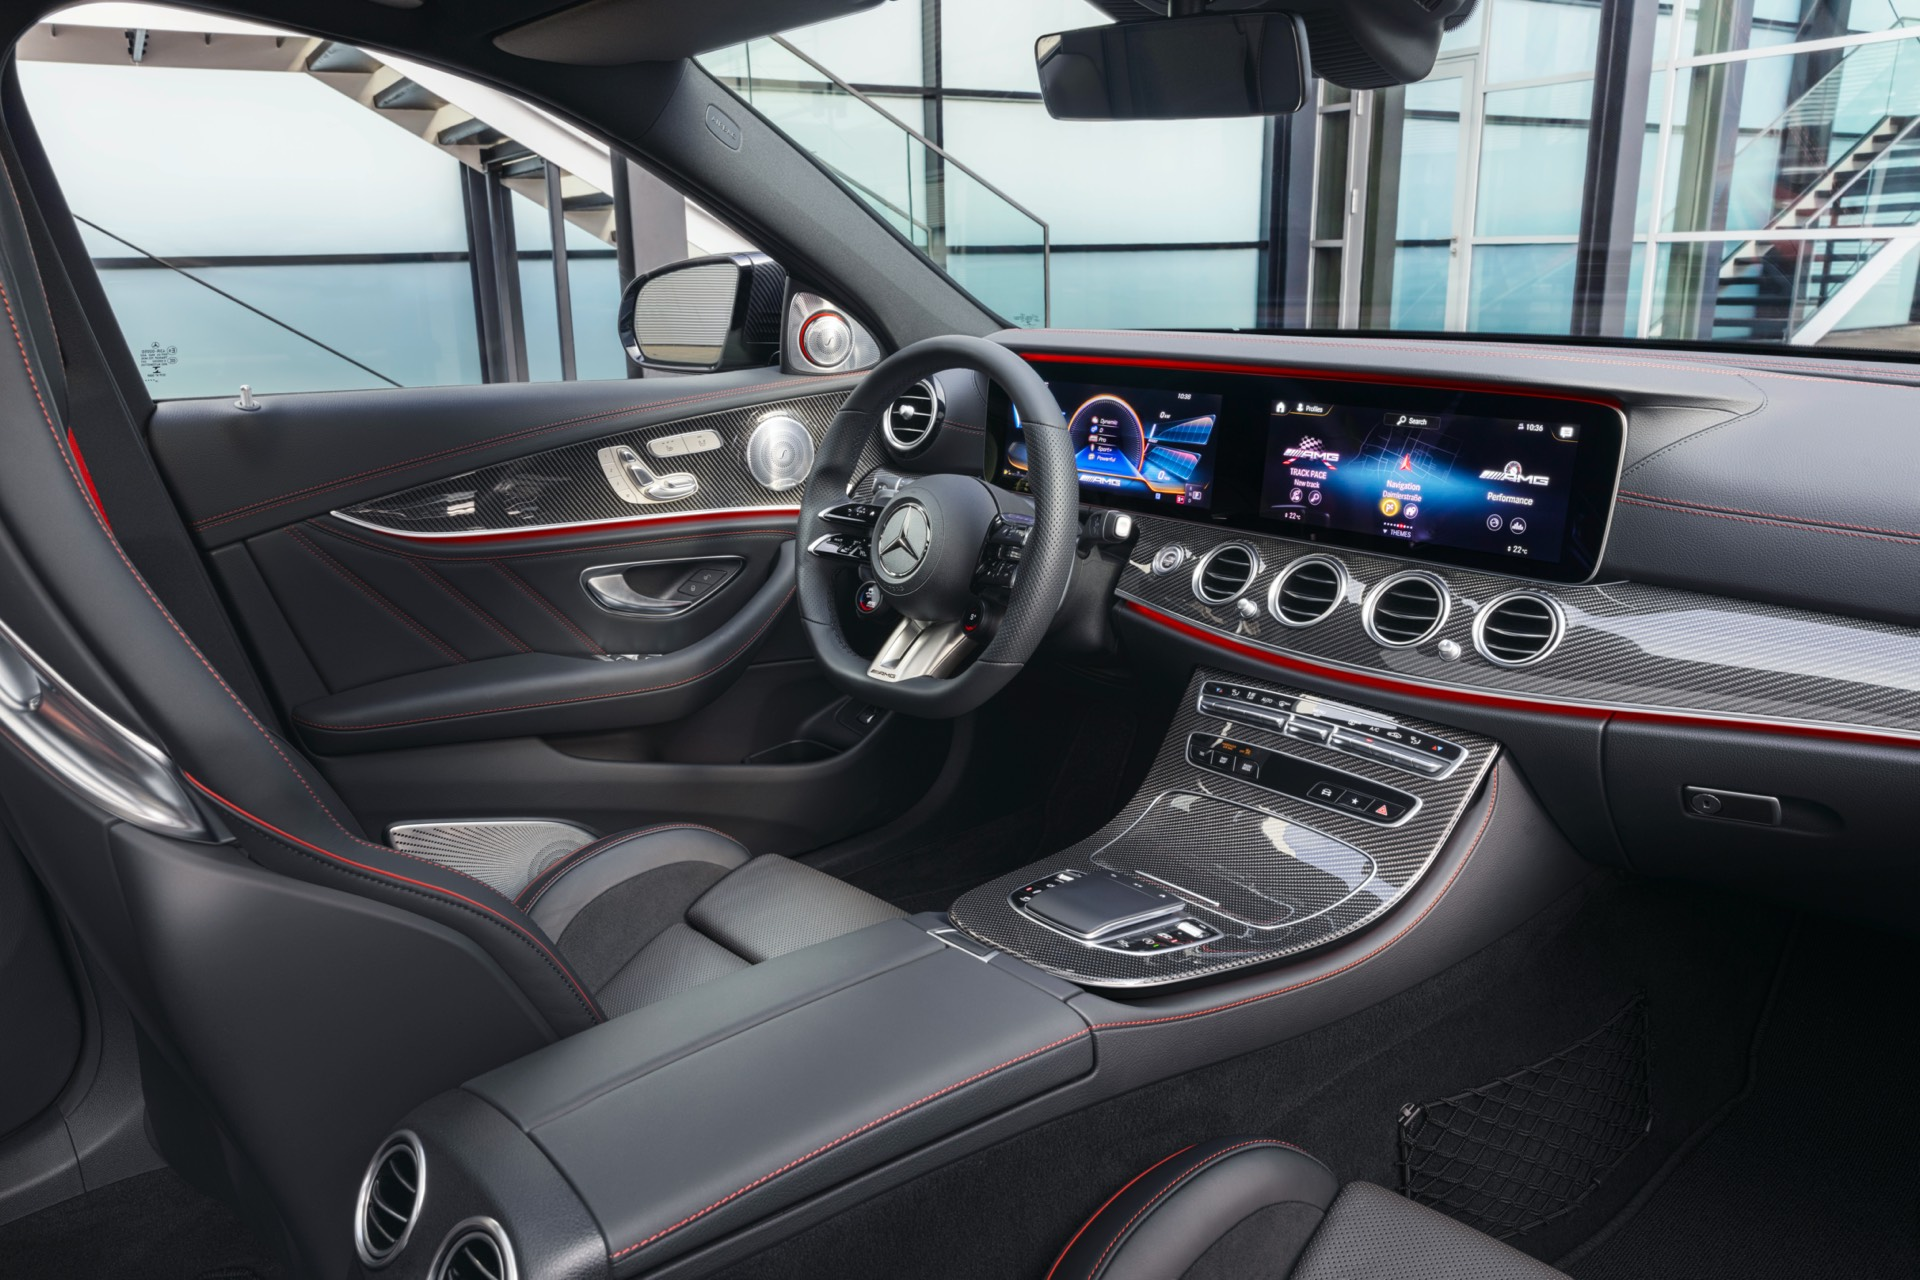 Mercedes-AMG E 53 Sedan Facelift Interior